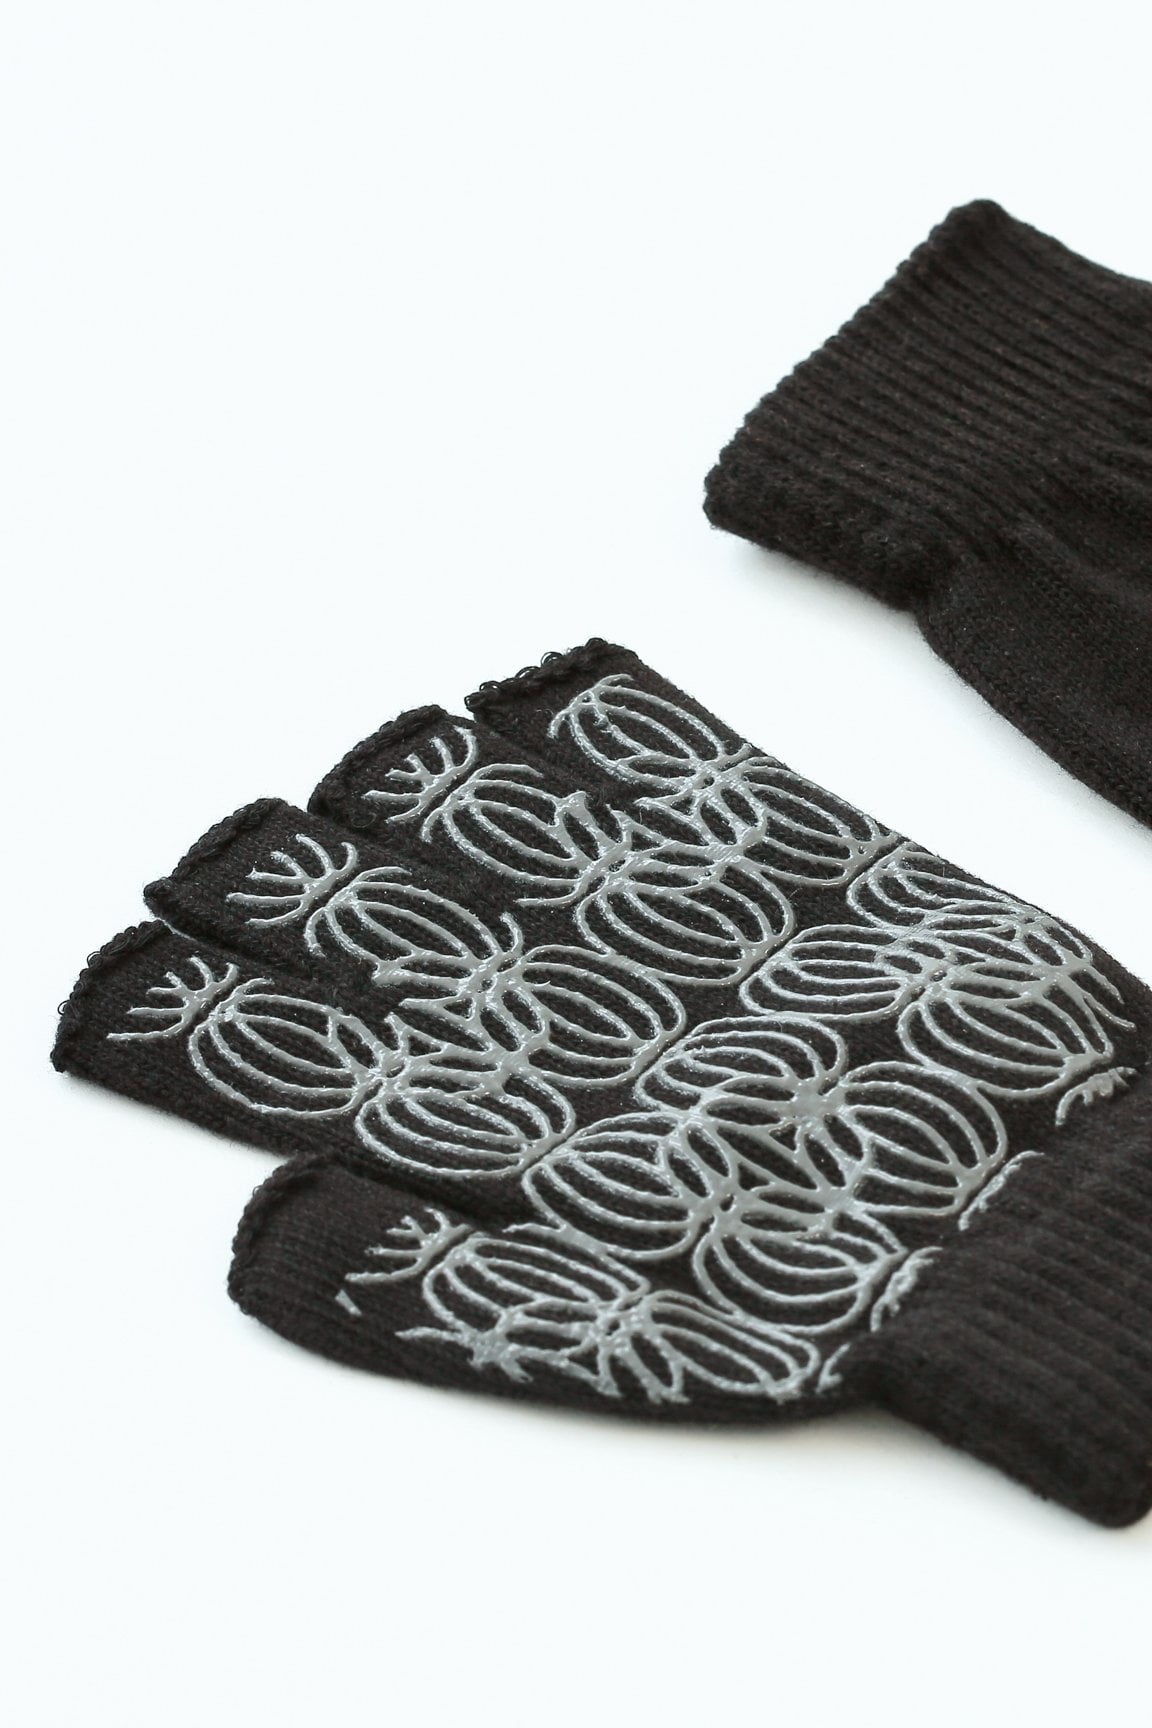 Yoga Grip Gloves